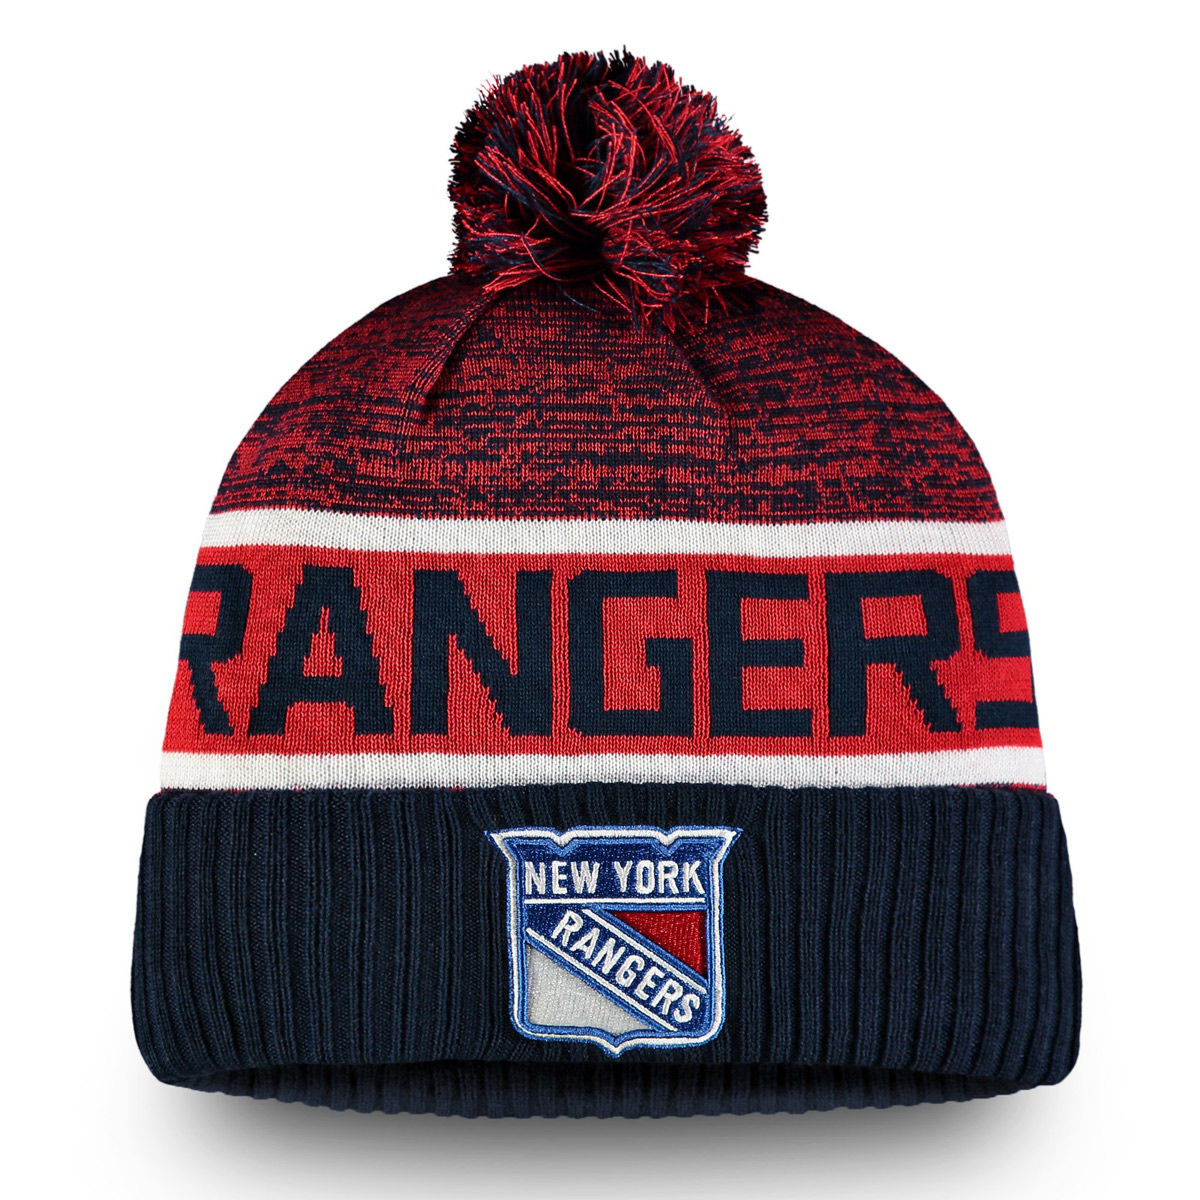 New York Rangers Adult Authentic Pro Knit Hat